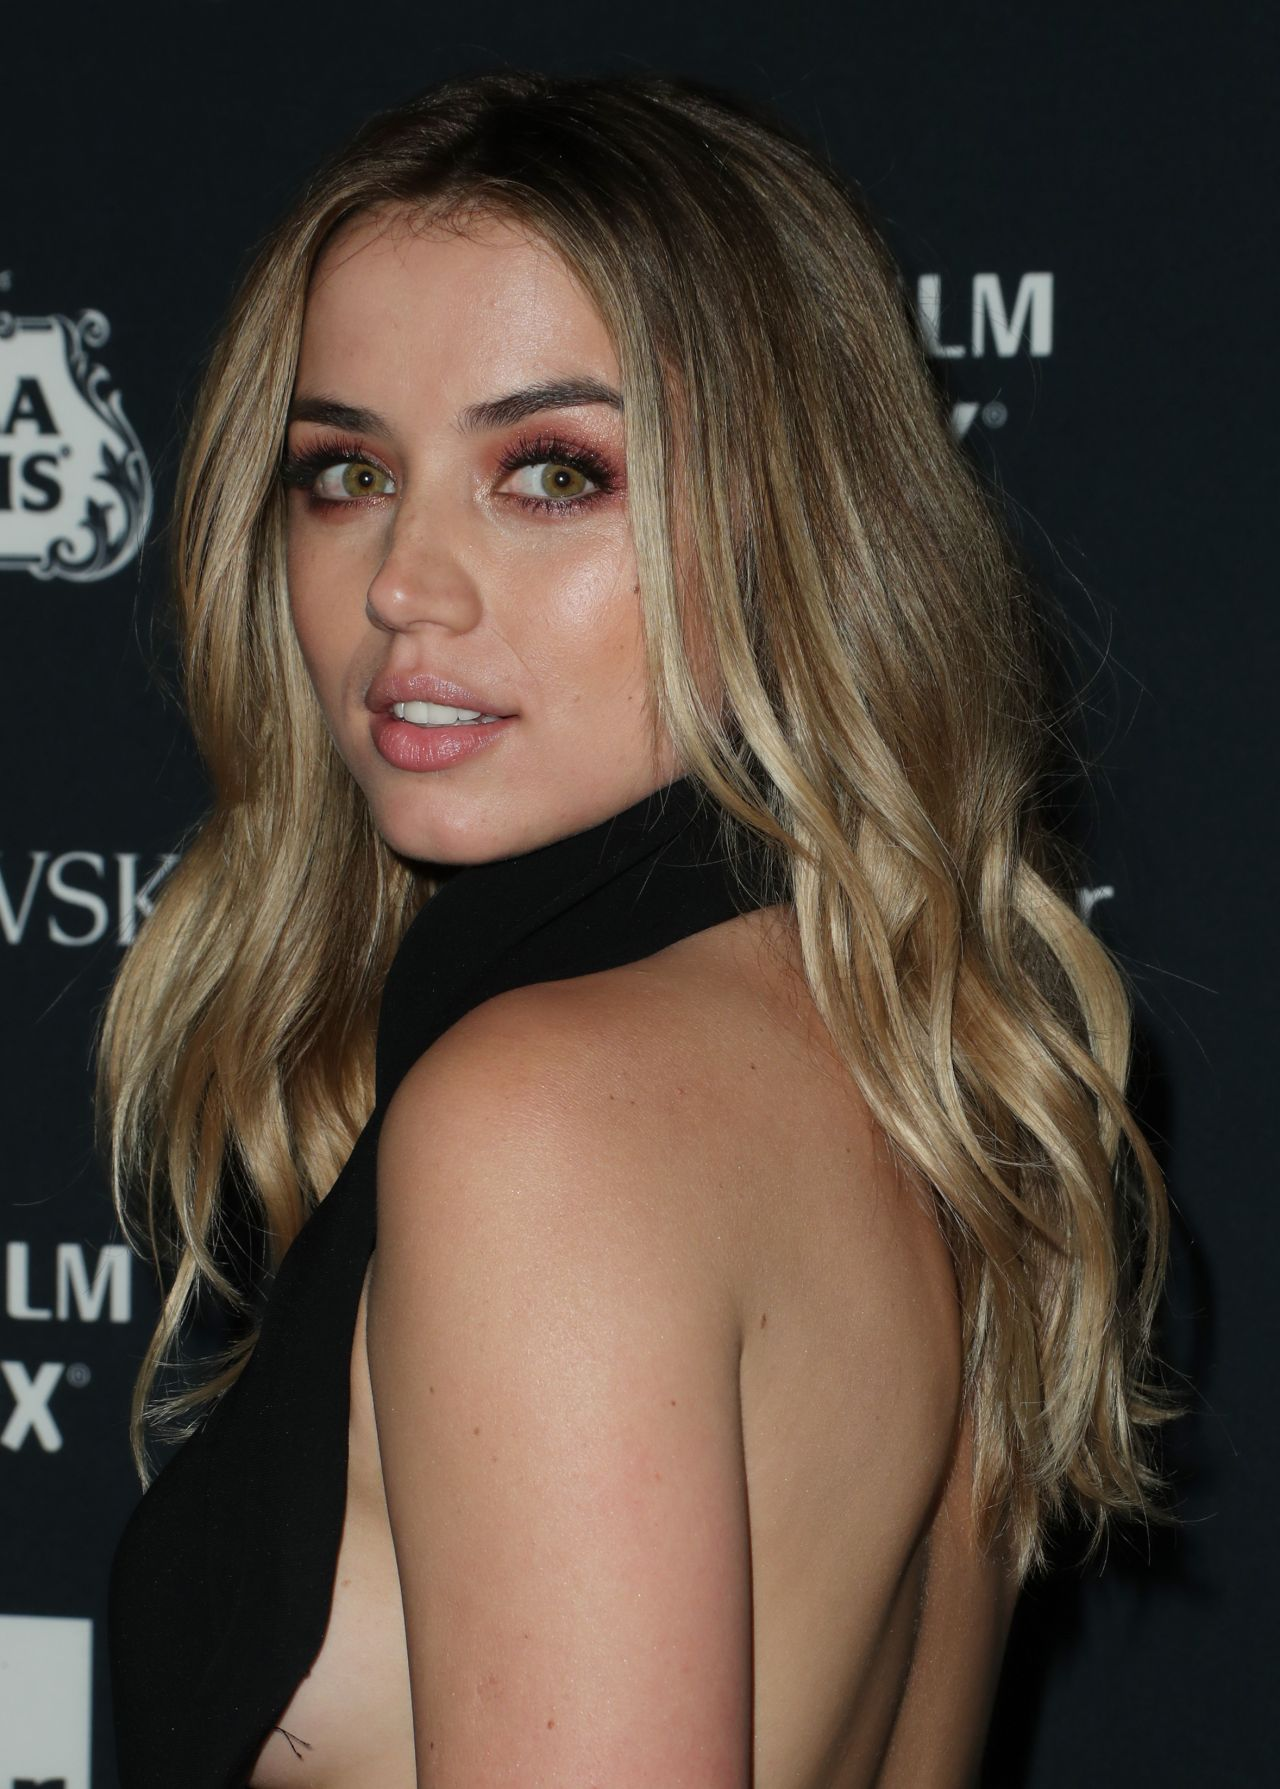 Pictures Ana de Armas nude (92 photo), Topless, Cleavage, Selfie, cleavage 2006